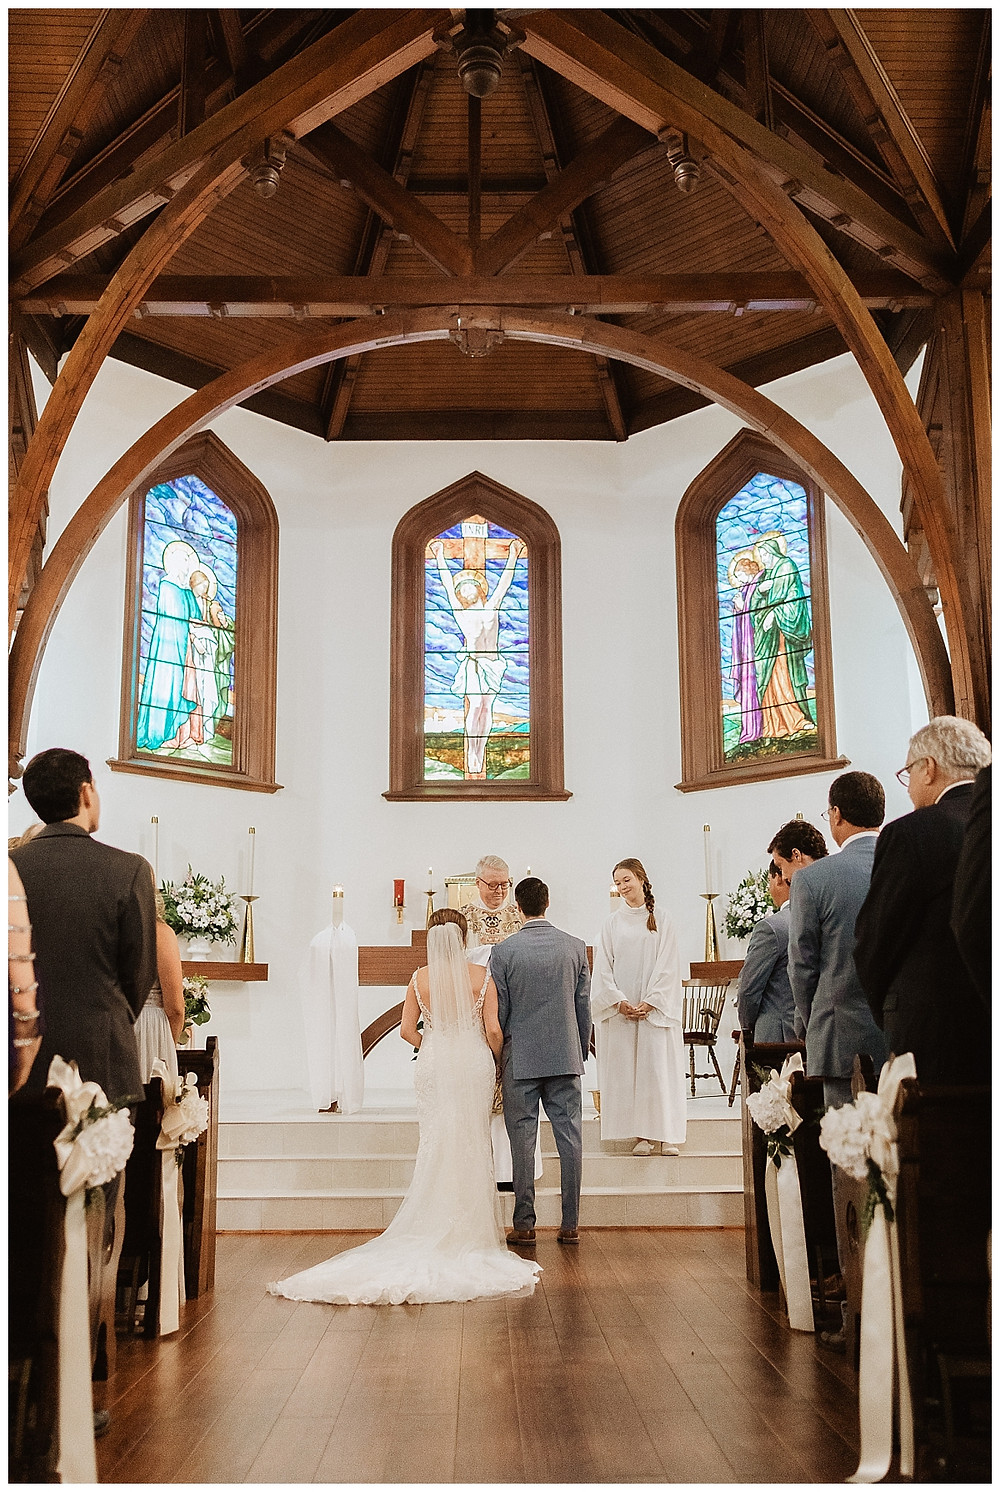 Indoor Church Wedding Ceremony Vows